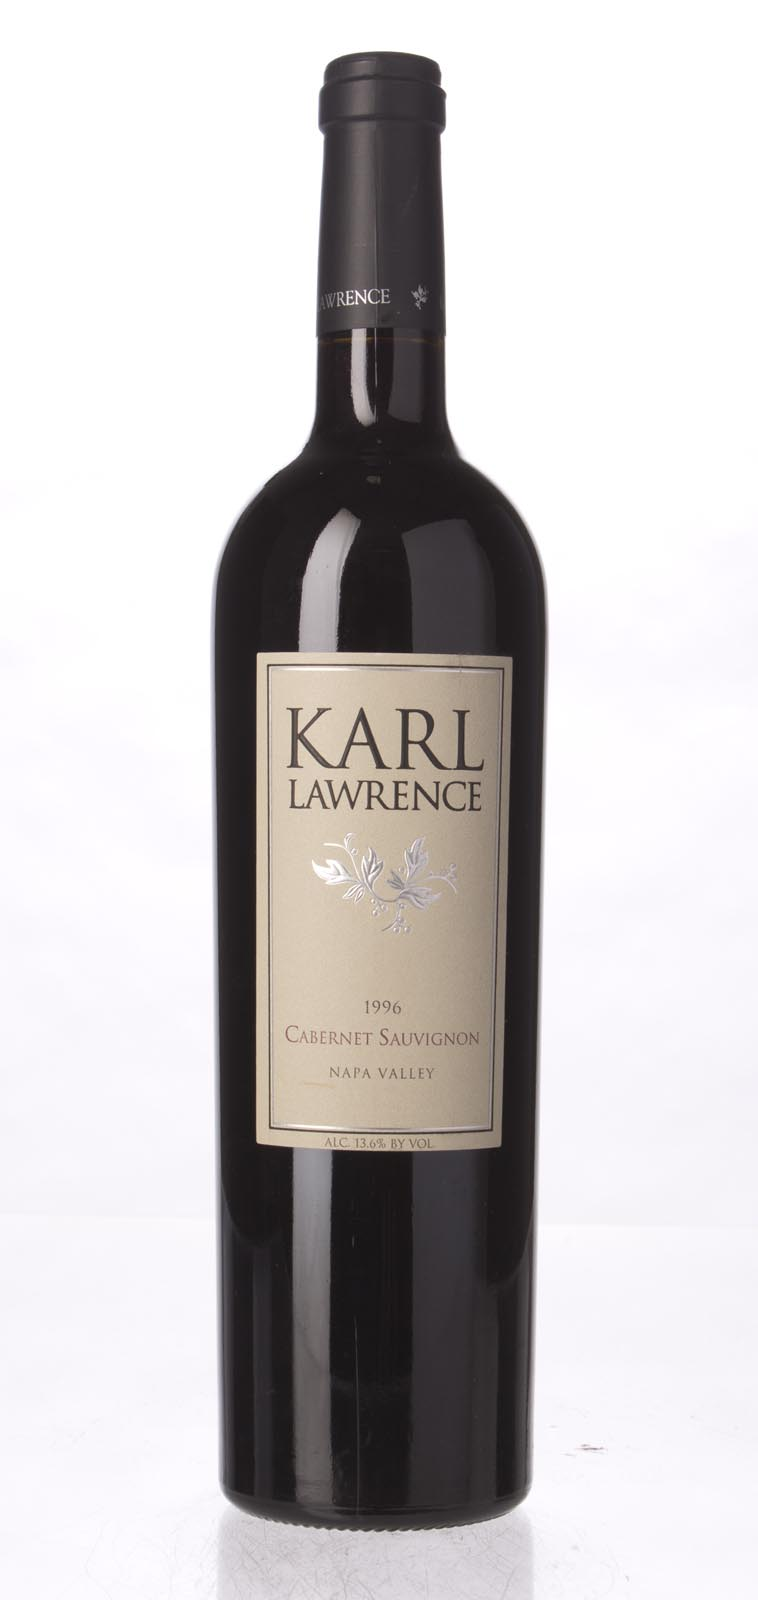 Karl Lawrence Cabernet Sauvignon Napa Valley 1996, 750mL () from The BPW - Merchants of rare and fine wines.